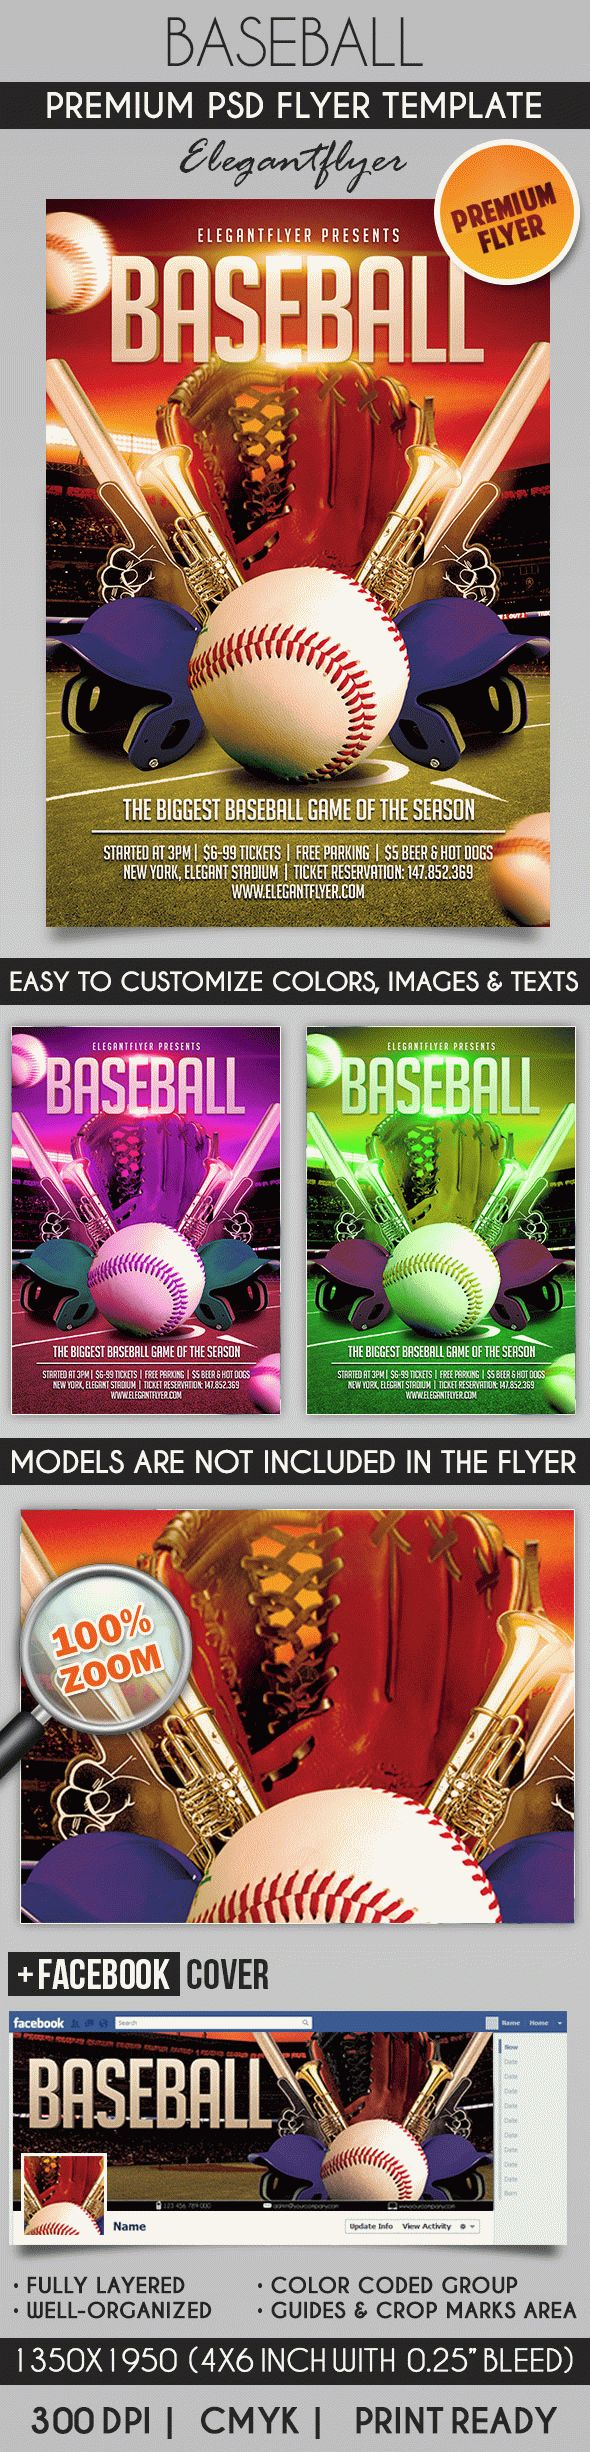 Baseball Flyer PSD Template Facebook Cover by ElegantFlyer – Baseball Flyer